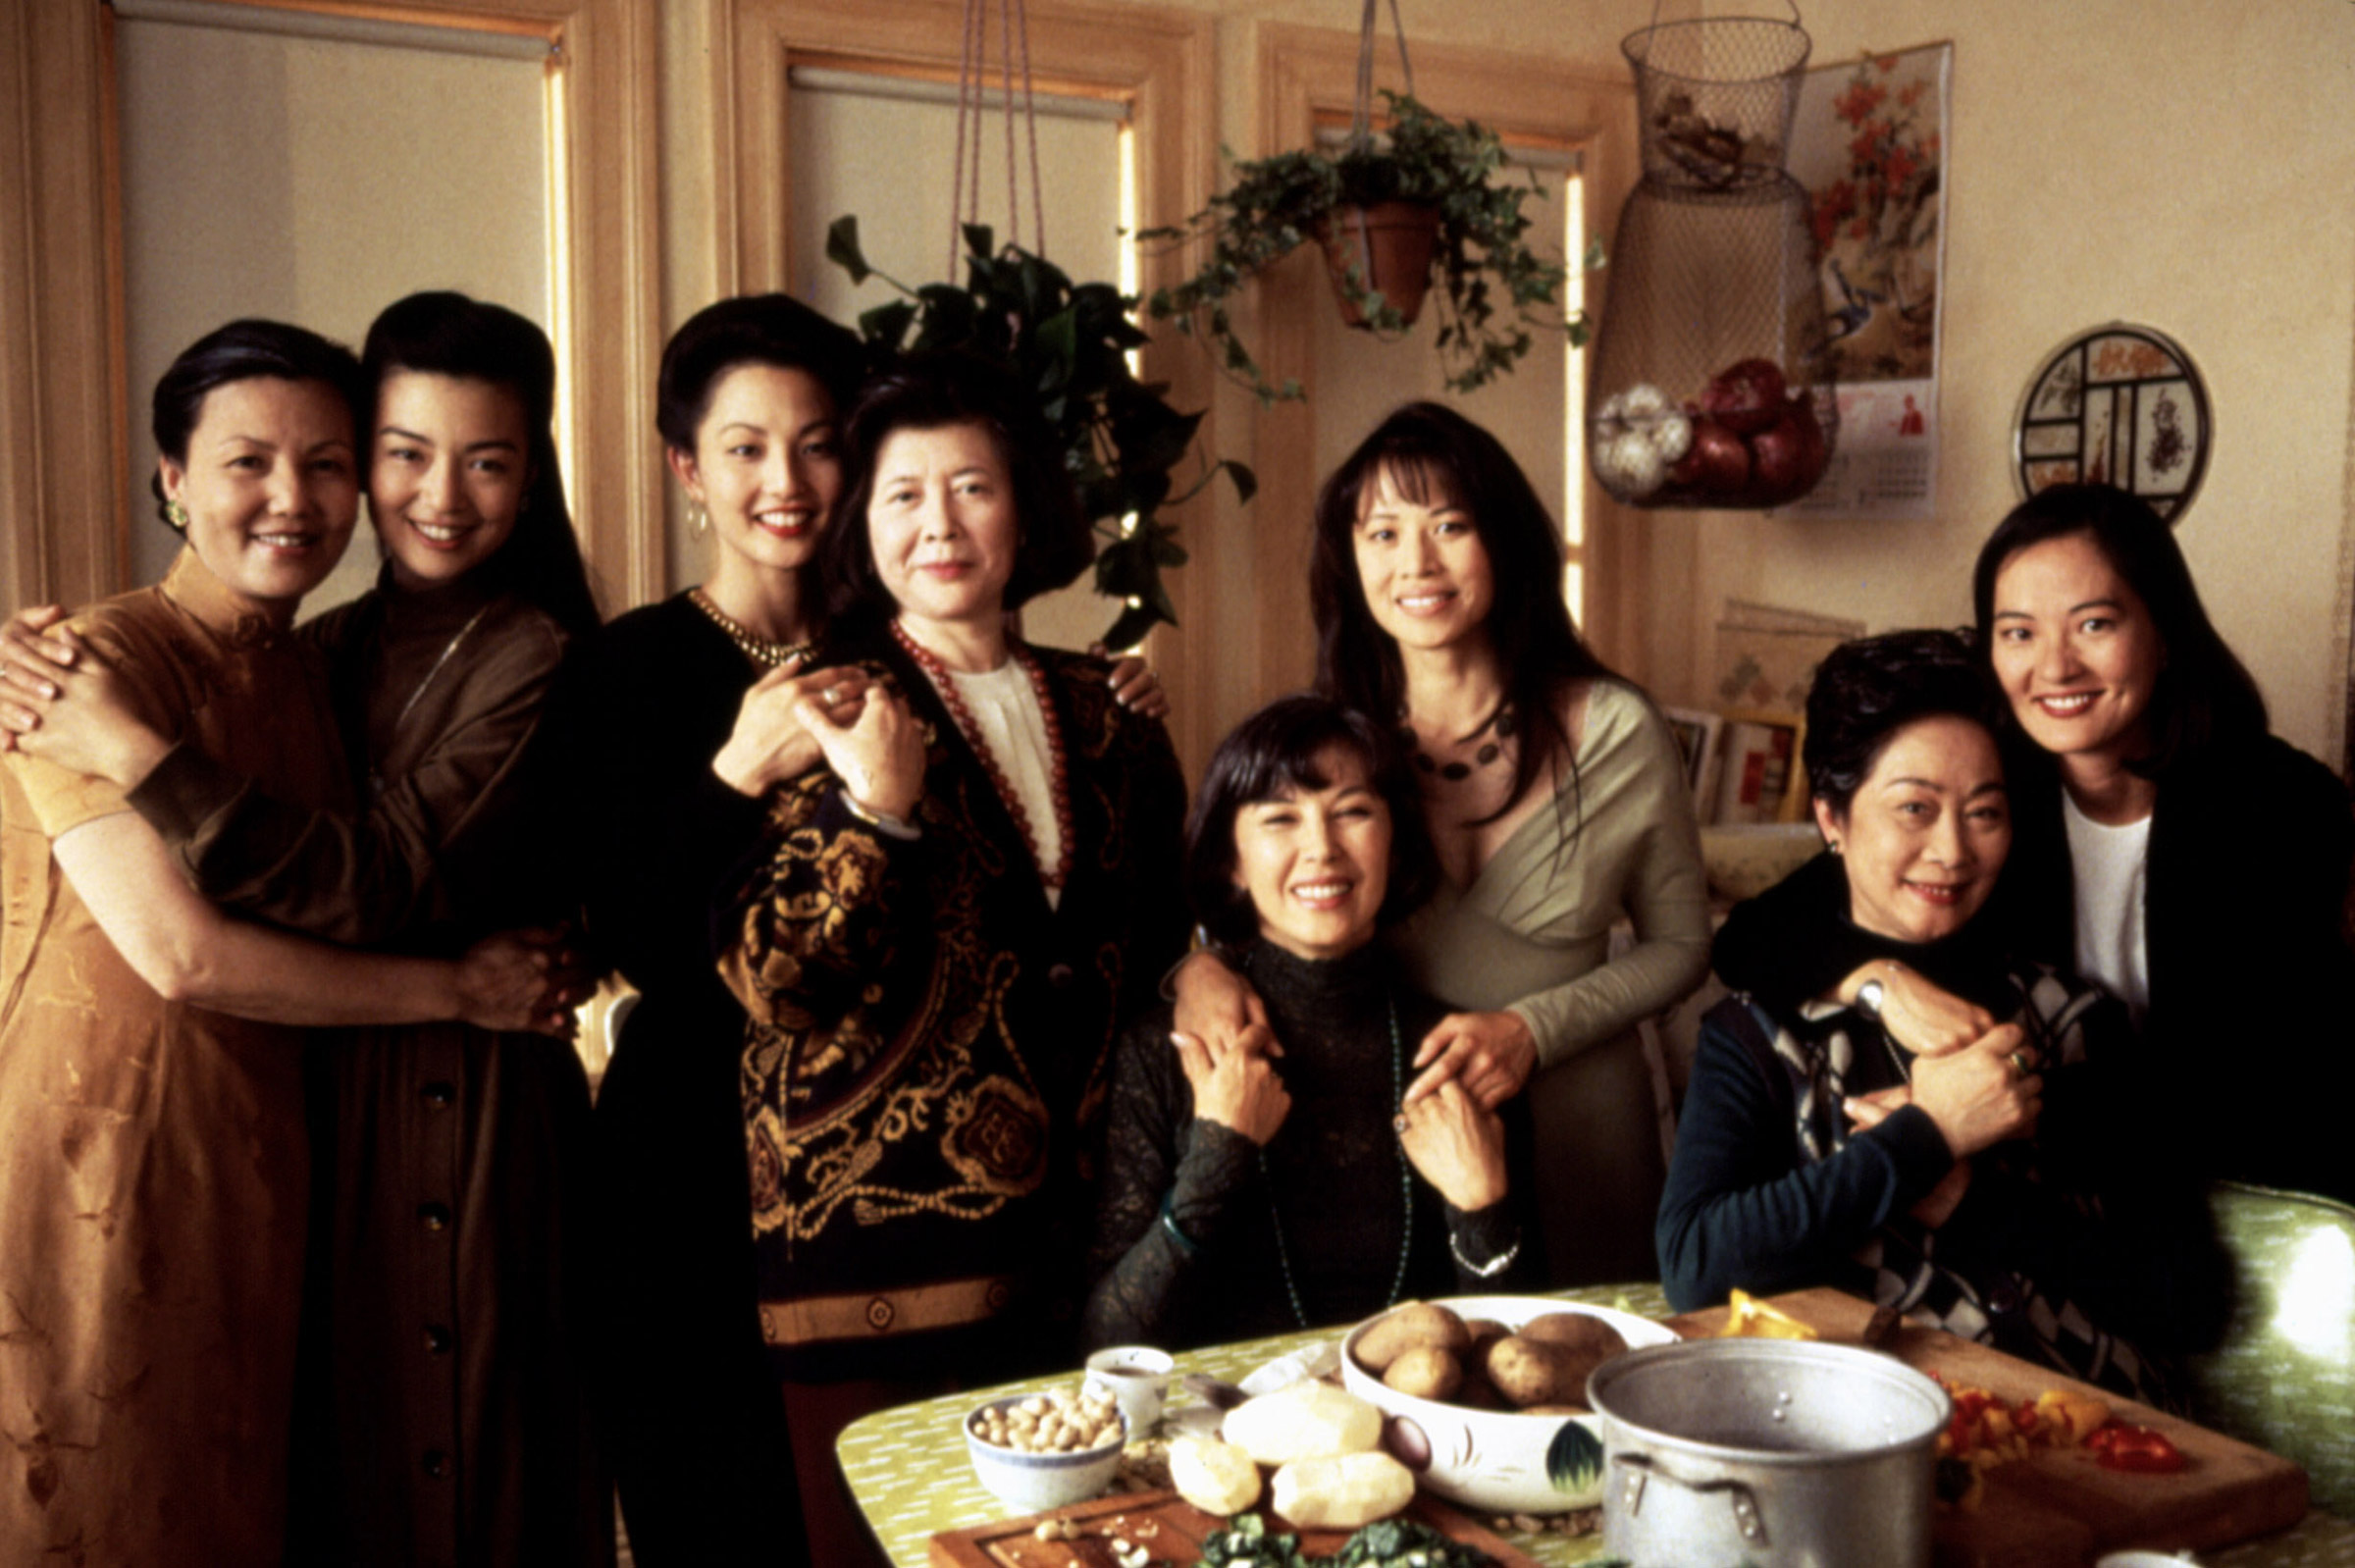 Kieu Chinh, Ming-Na Wen, Tamlyn Tomita, Tsai Chin, France Nuyen, Lauren Tom, Lisa Lu, and Rosalind Chao in The Joy Luck Club, 1993.